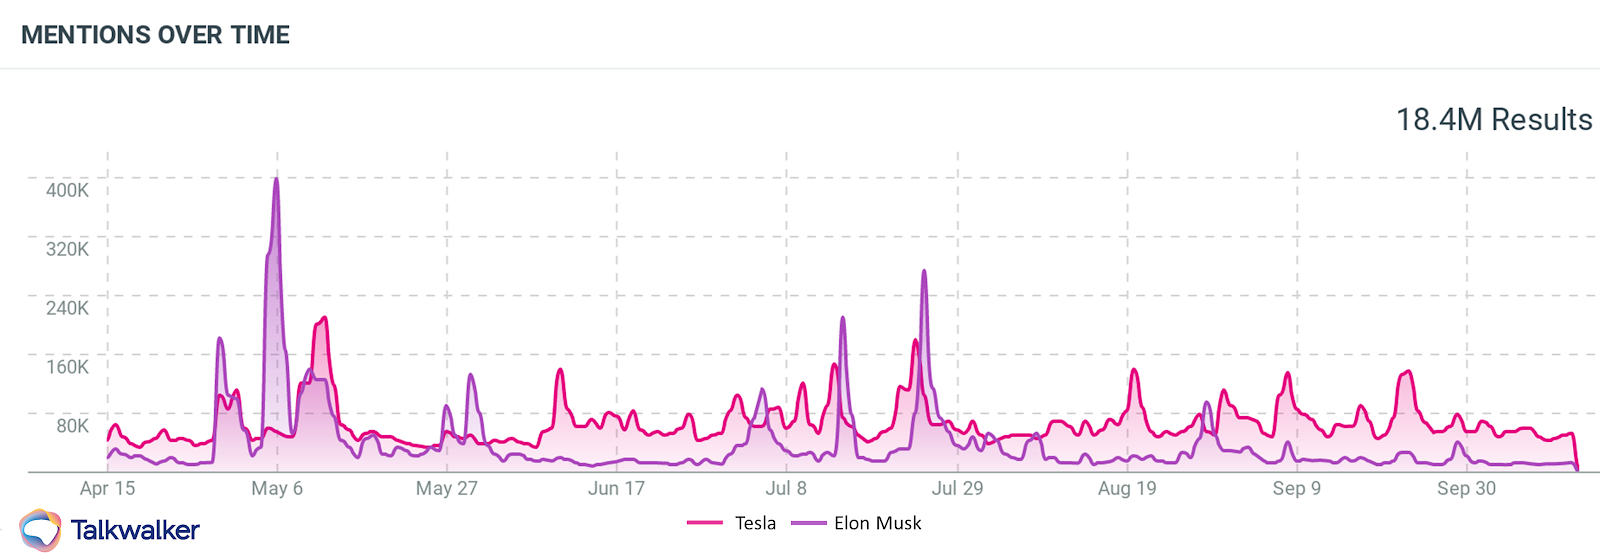 Mentions around Tesla and Elon Musk follow a similar pattern, as Tesla tends to spike when its CEO's name spikes.